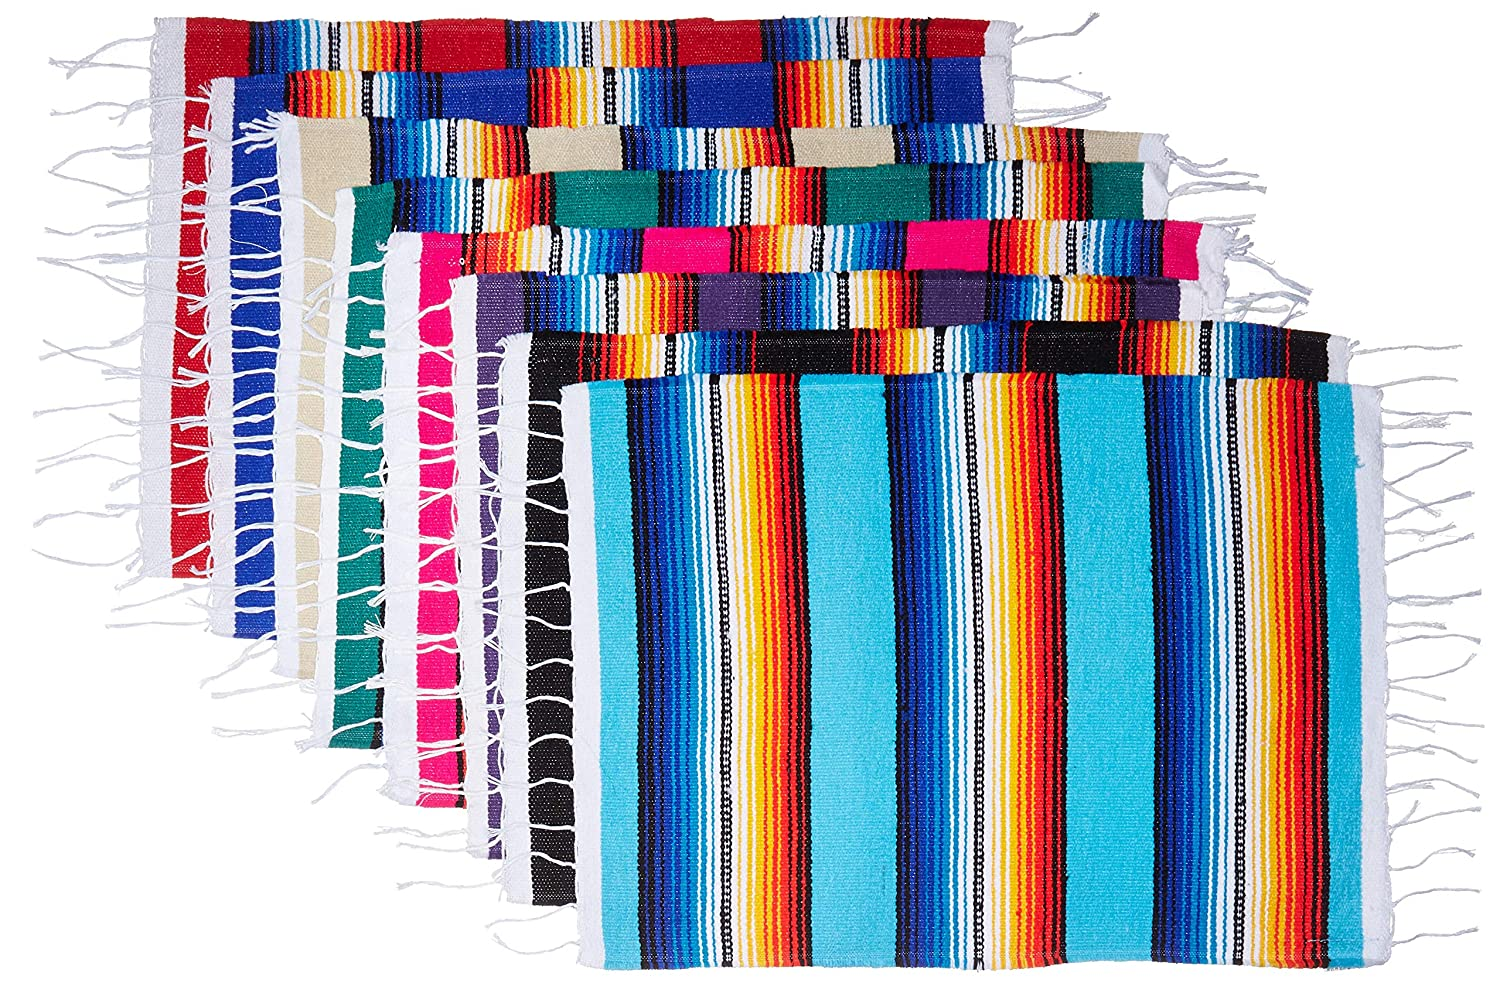 El Paso Saddleblanket Mexican Serape Style Place Mats, Assorted Place Mats for Mexican Party or Wedding Decorations, 19inch x 13inch (Set of 8)